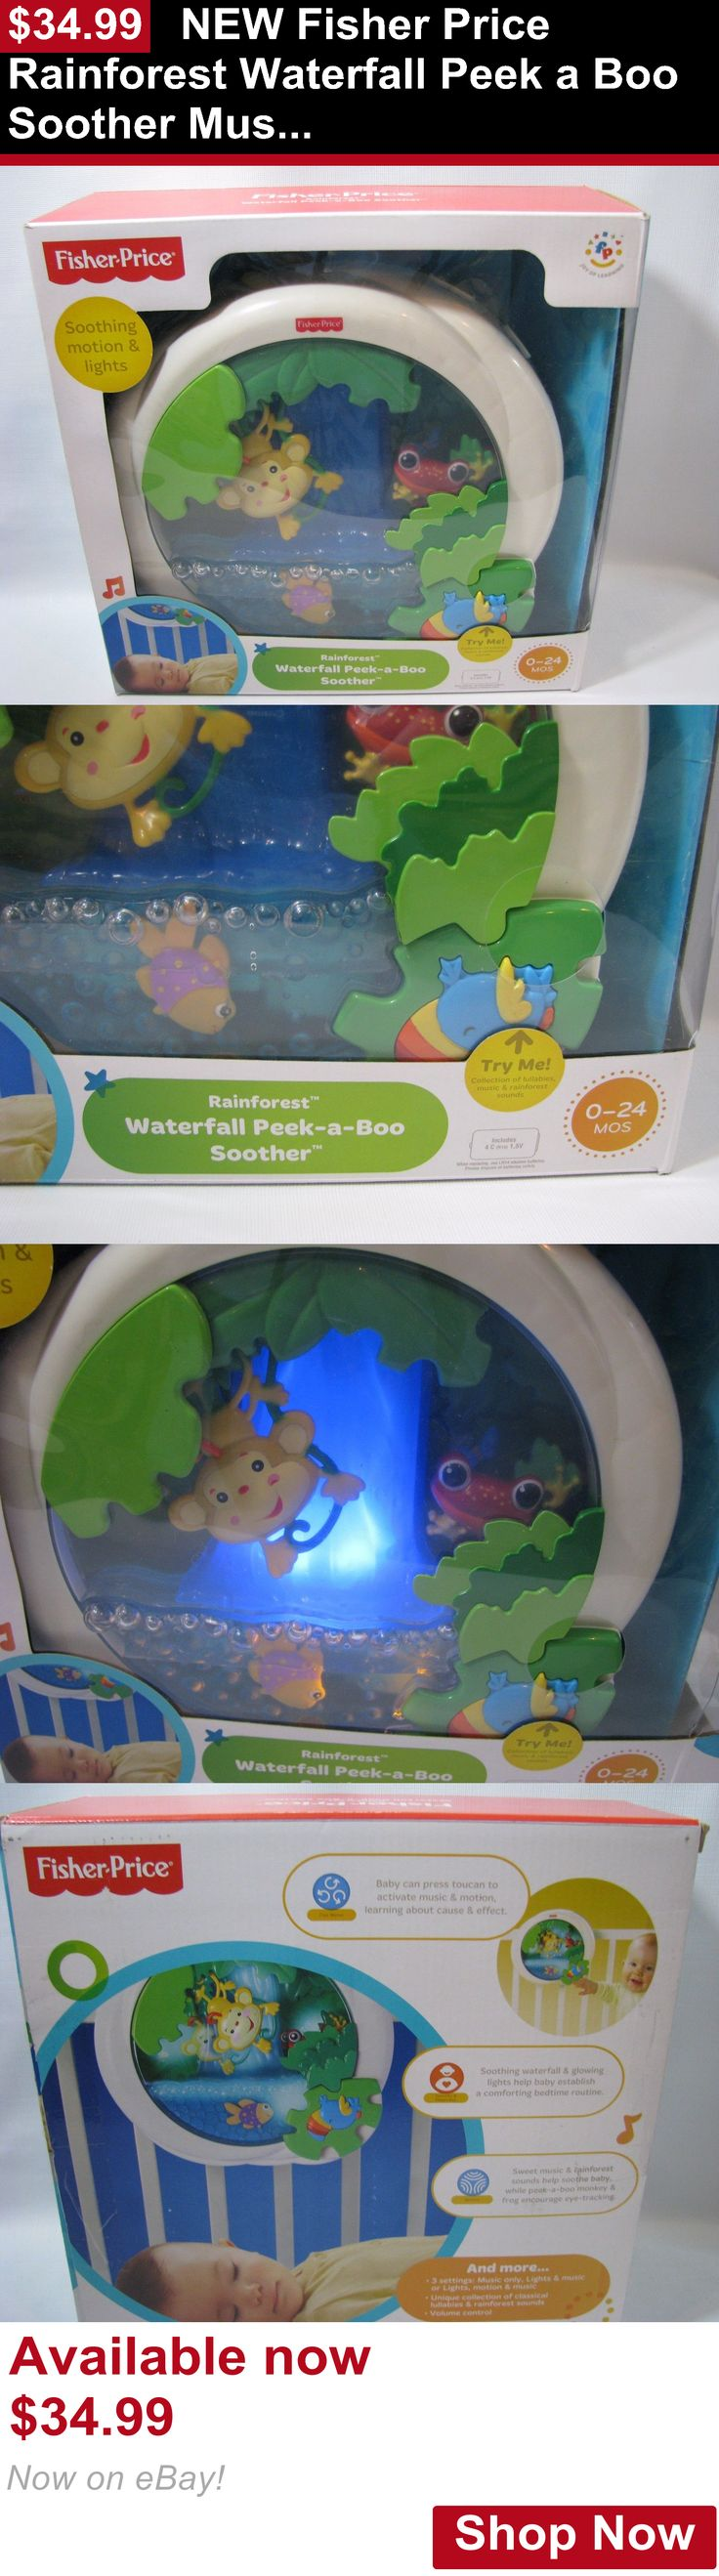 Crib Toys: New Fisher Price Rainforest Waterfall Peek A Boo Soother Musical Baby Crib Toy BUY IT NOW ONLY: $34.99